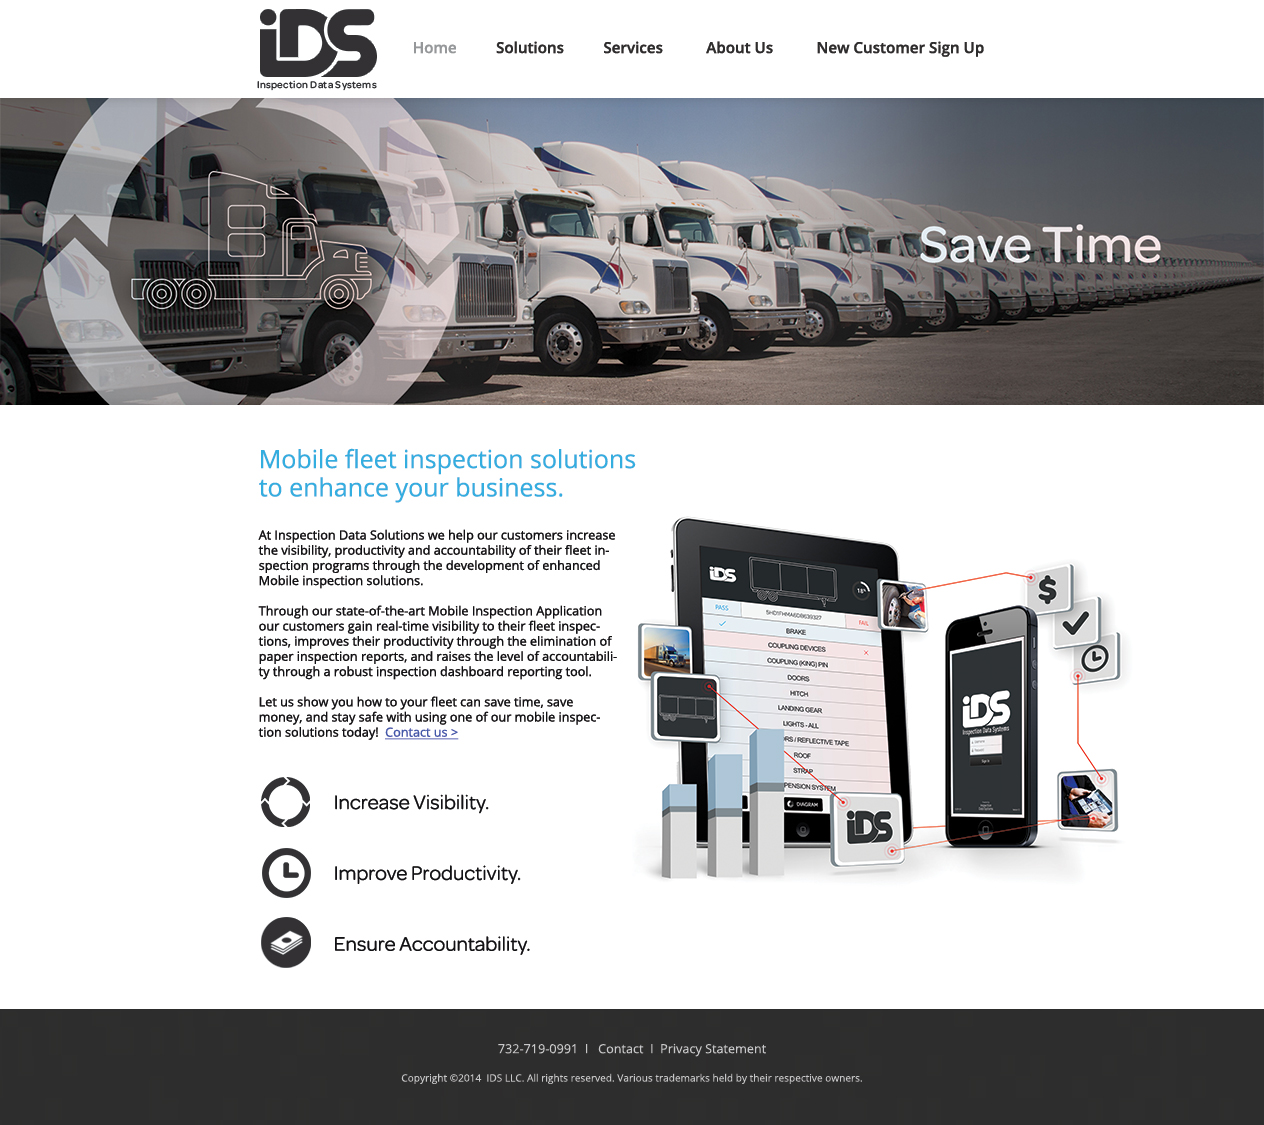 IDS_HomePage_3.31.14_a